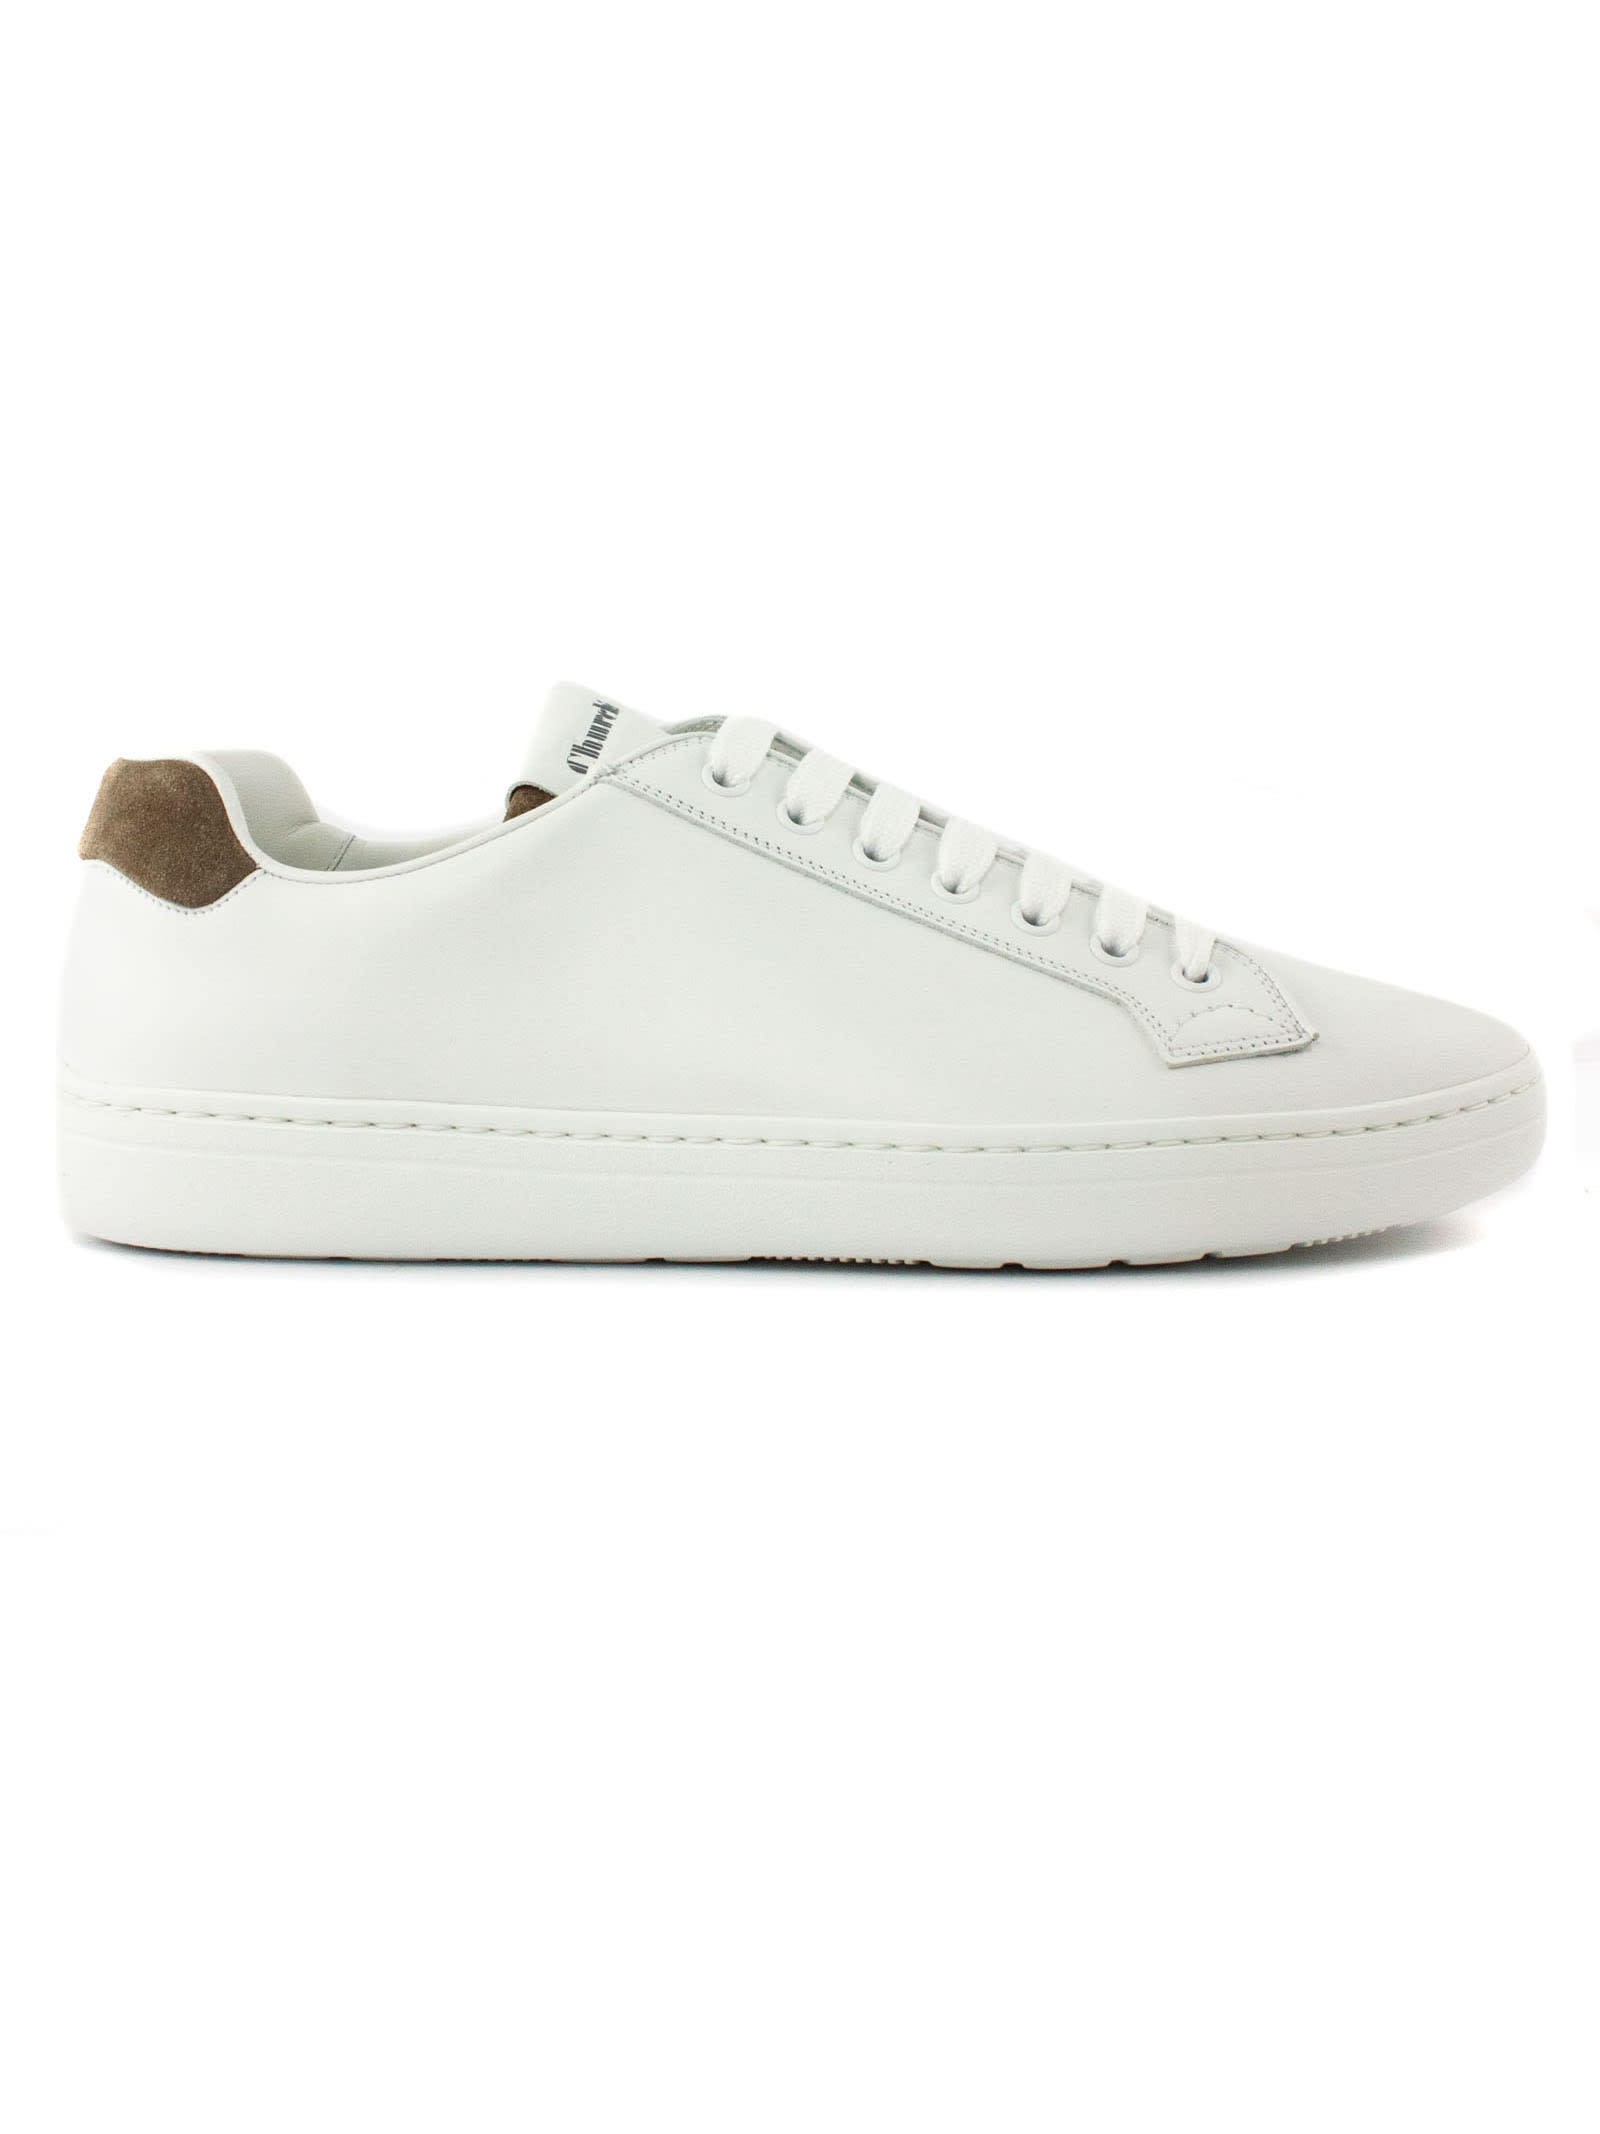 Church's WHITE CLASSIC LACE-UP SNEAKER